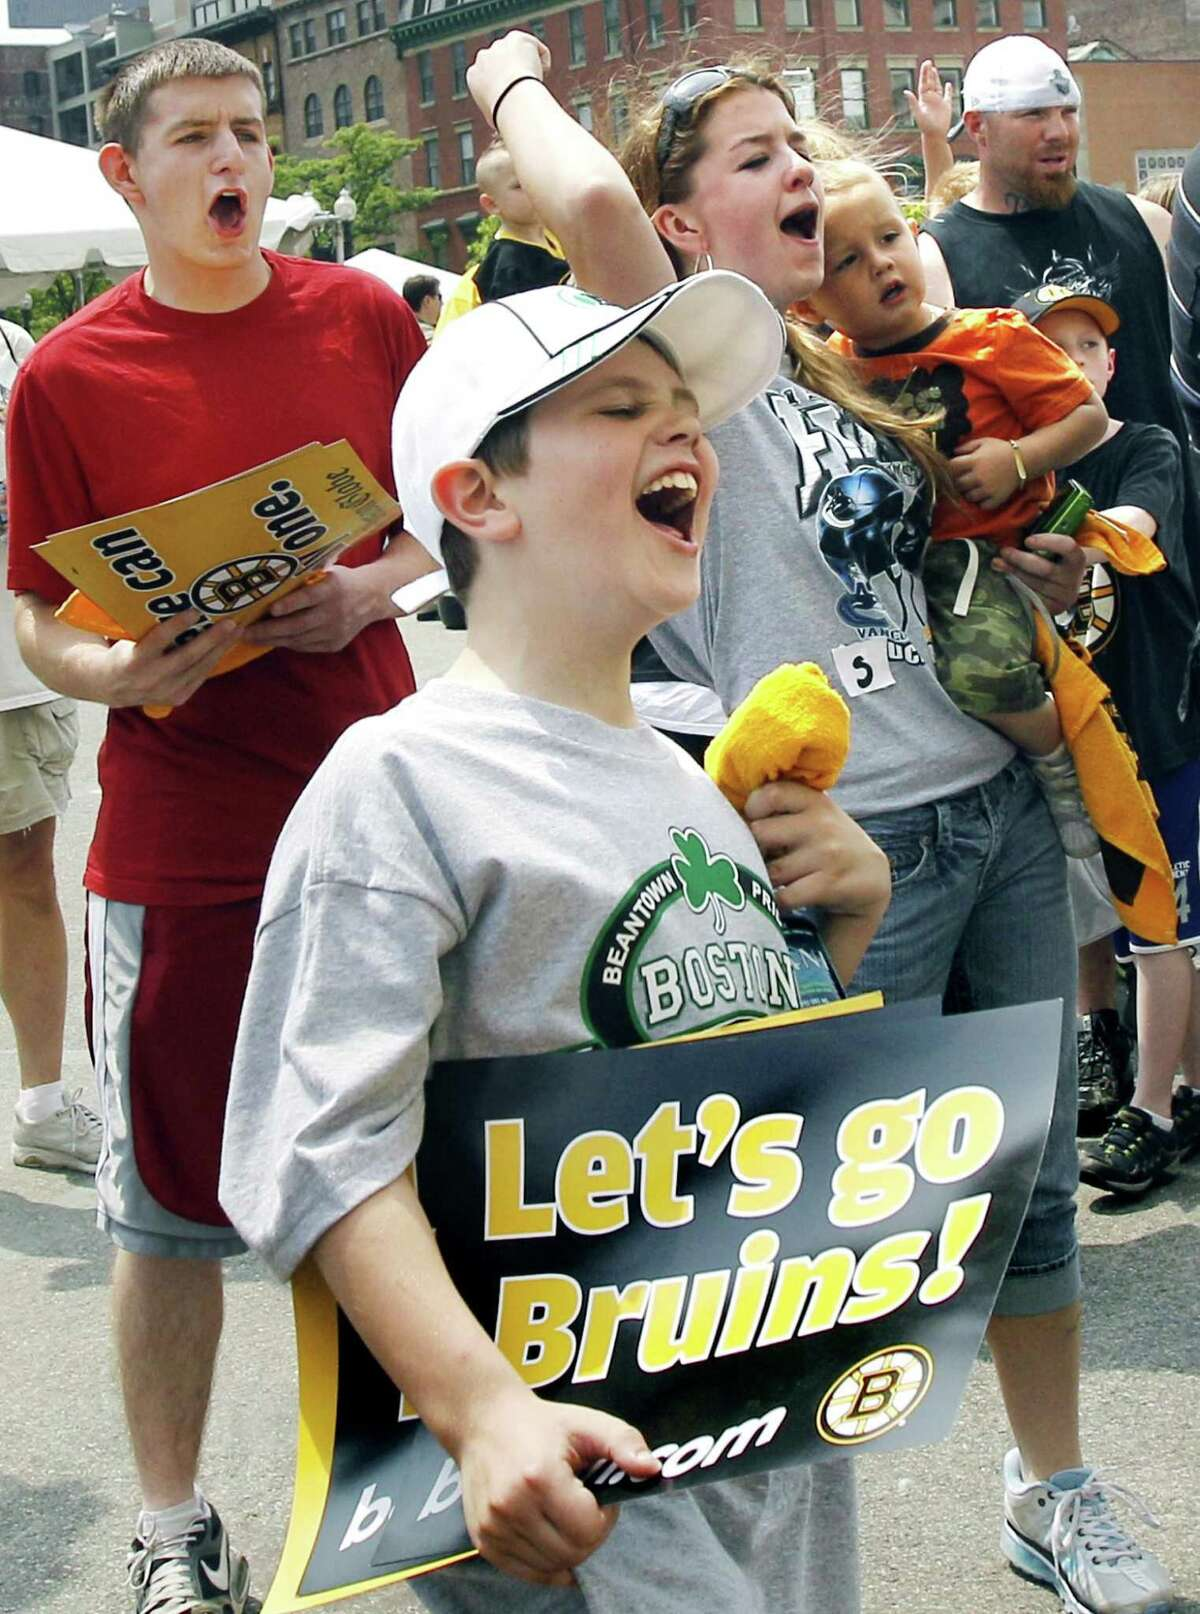 Boston Bruins fans cheer at a FanFest outside the TD Garden in Boston Thursday, June 9, 2011 a day after the Bruins beat the Vancouver Canucks 4-0 in Game 4 of the NHL hockey Stanley Cup Finals. (AP Photo/Elise Amendola)